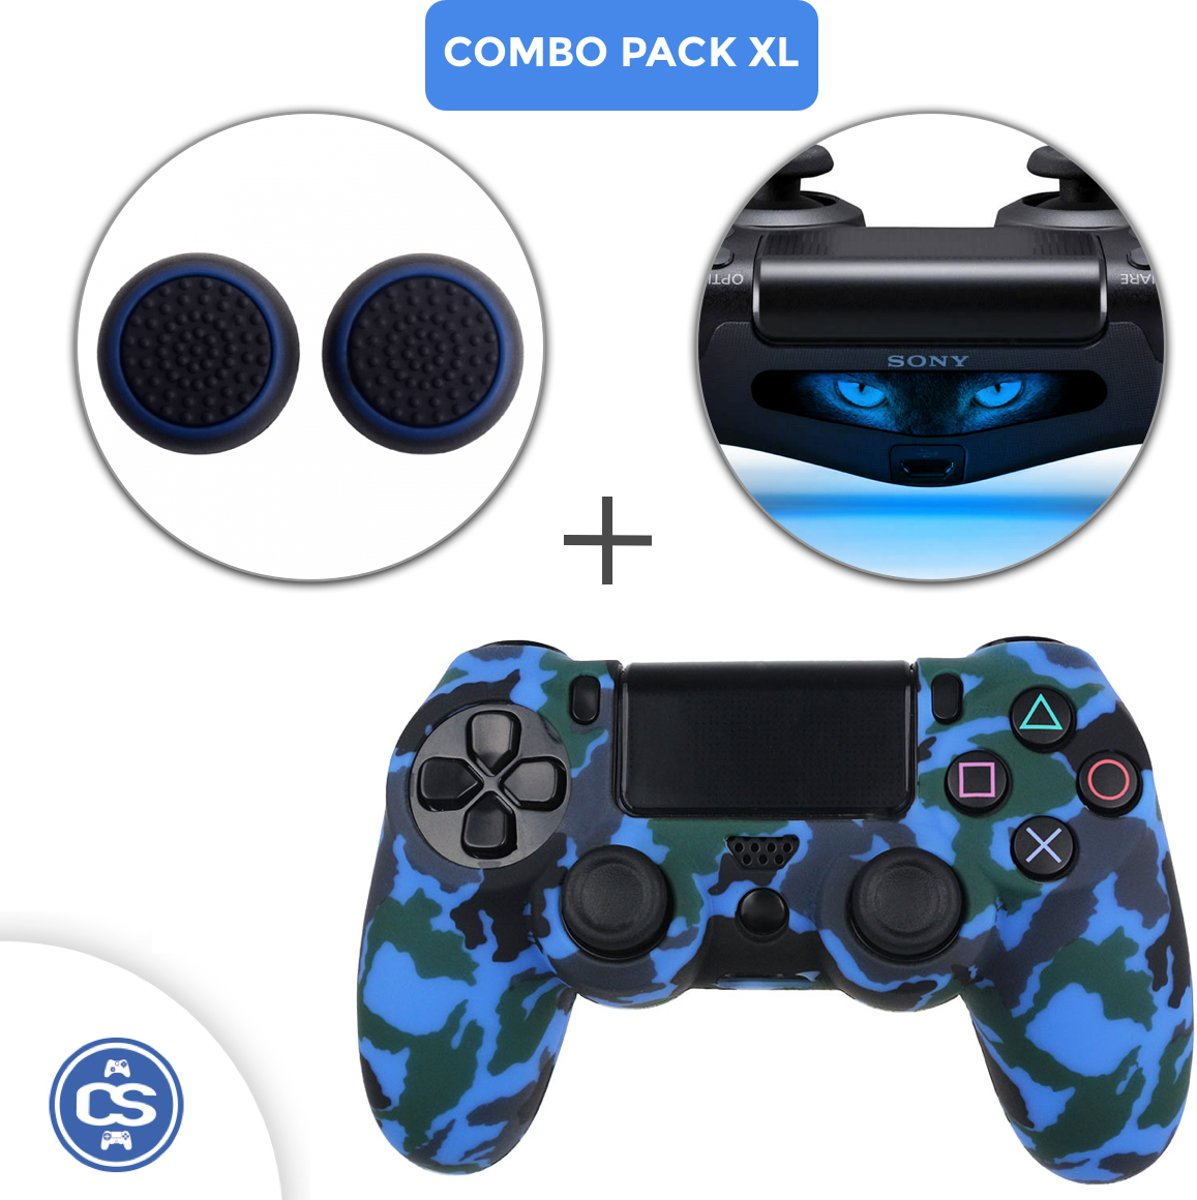 Camo Blauw Siliconen Beschermhoes + Thumb Grips + Lightbar Skin voor PS4 Dualshock PlayStation 4 Controller - Softcover Hoes / Case